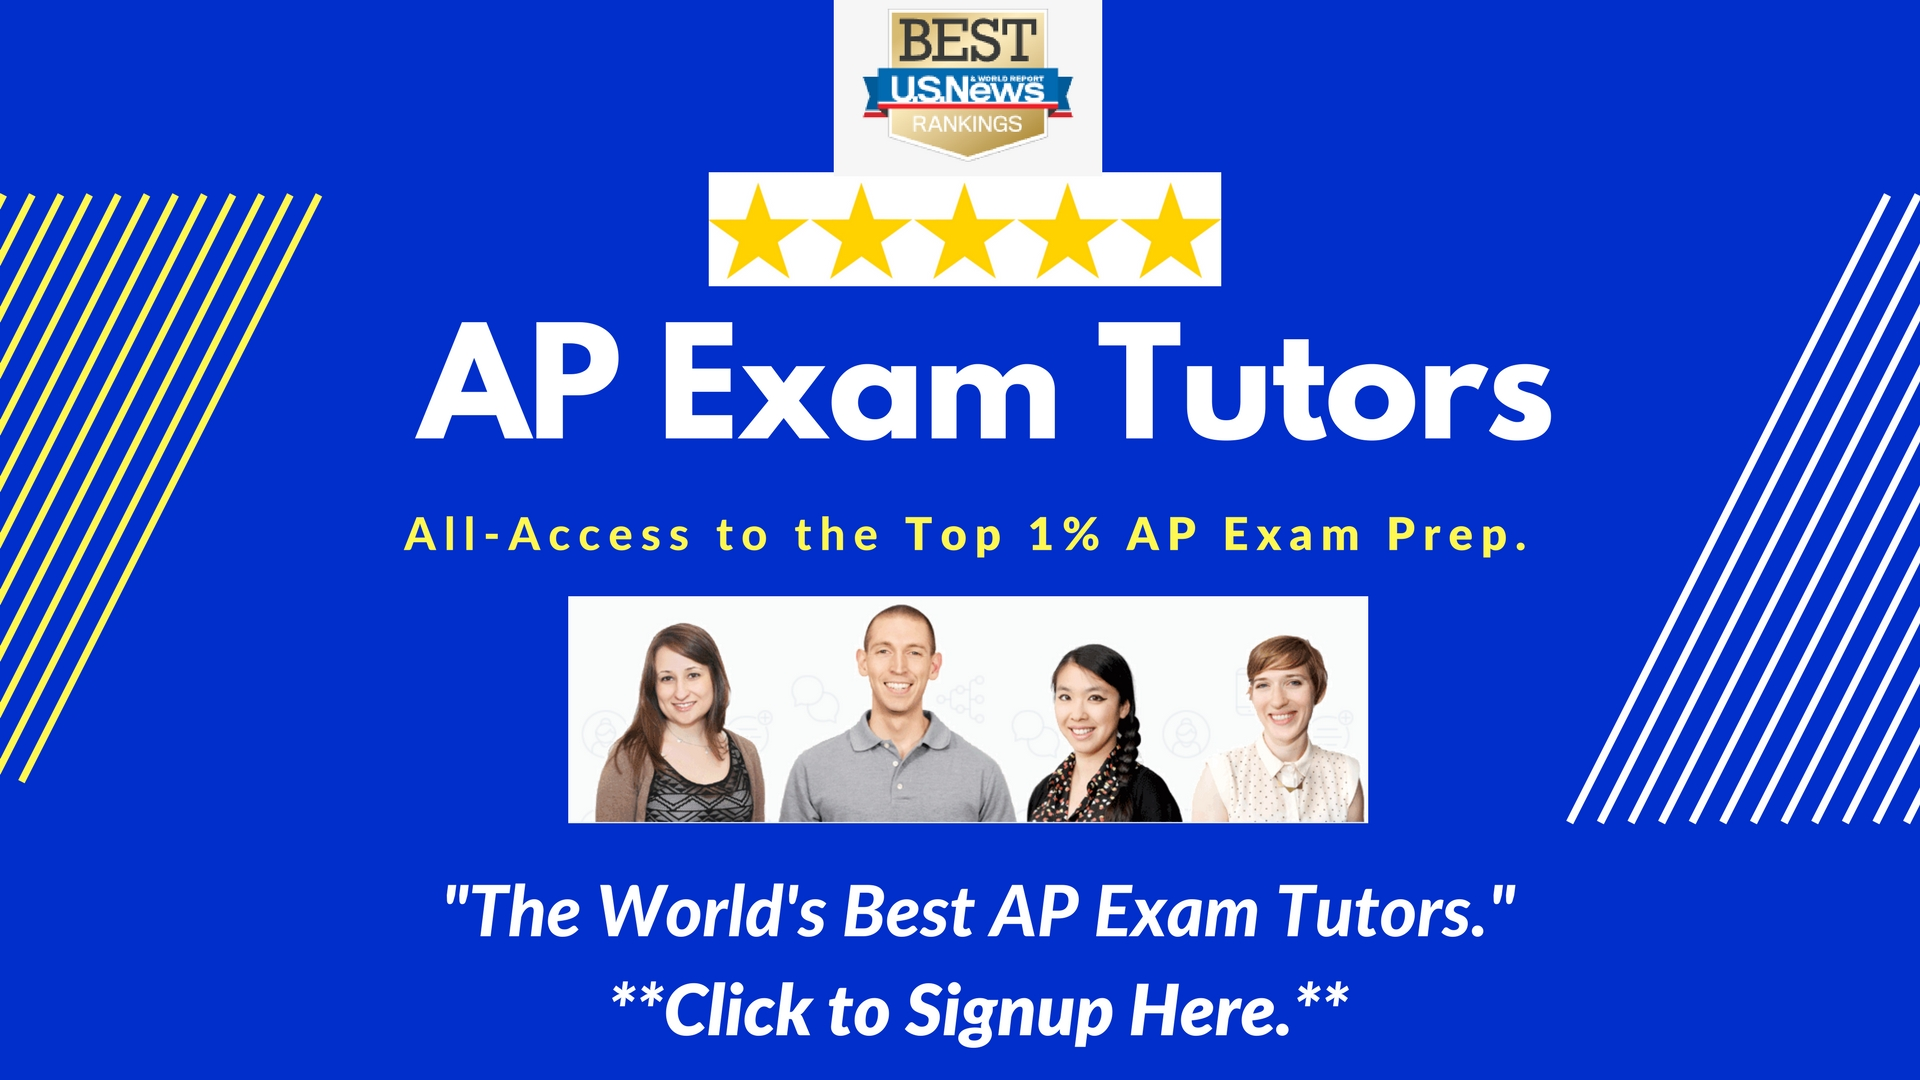 This article (read all) is about the AP Exam and How Your Son or Daughter Can Best Prepare...   To Signup for AP Exam Prep, Click Here.